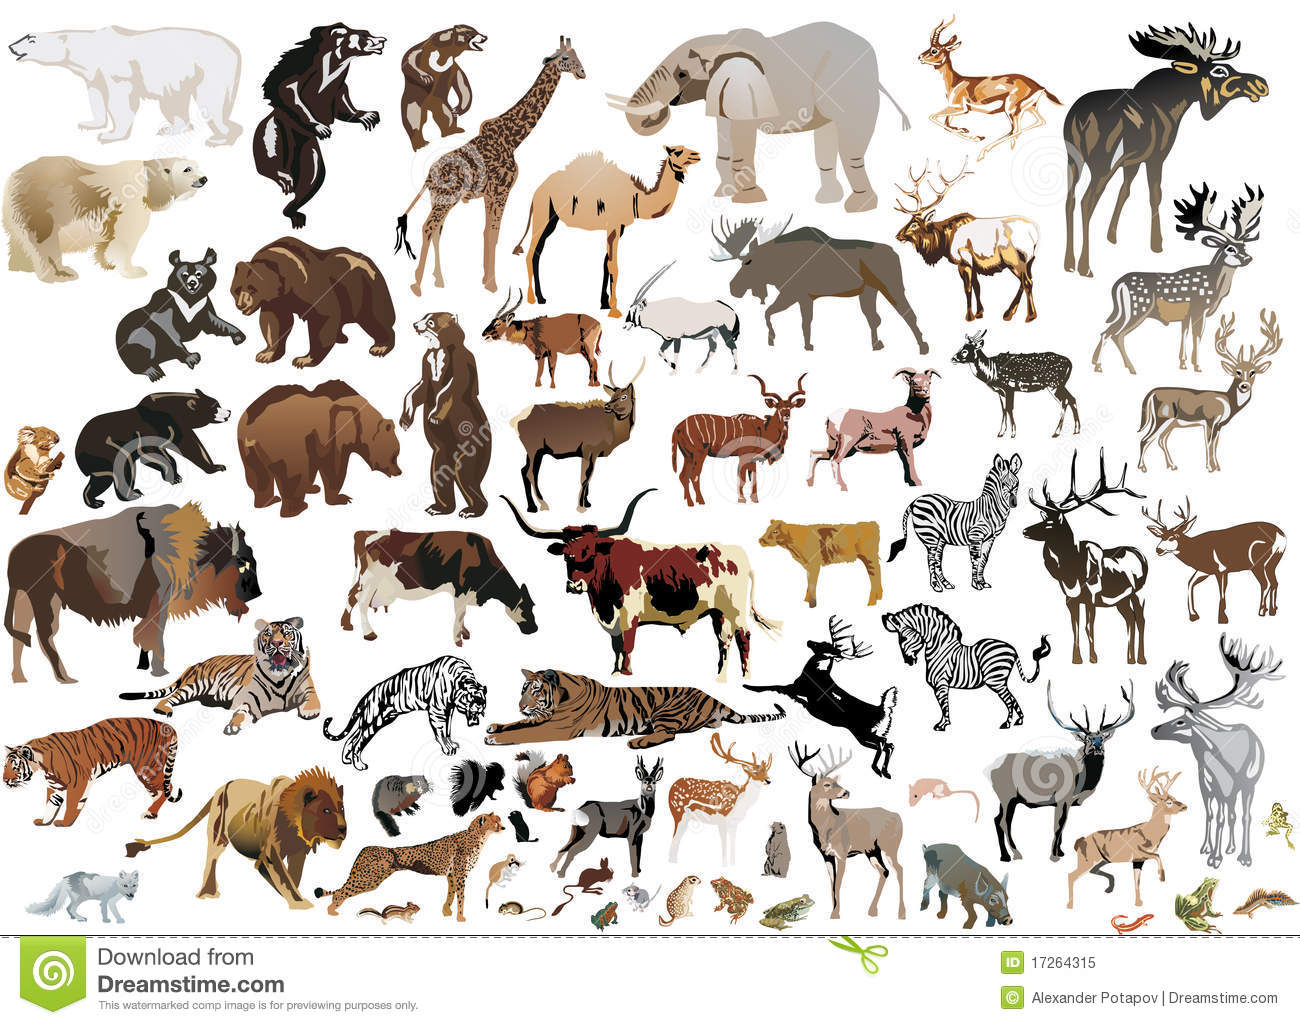 animals collection illustration background isolated vector huge royalty shutterstock bear pets collage